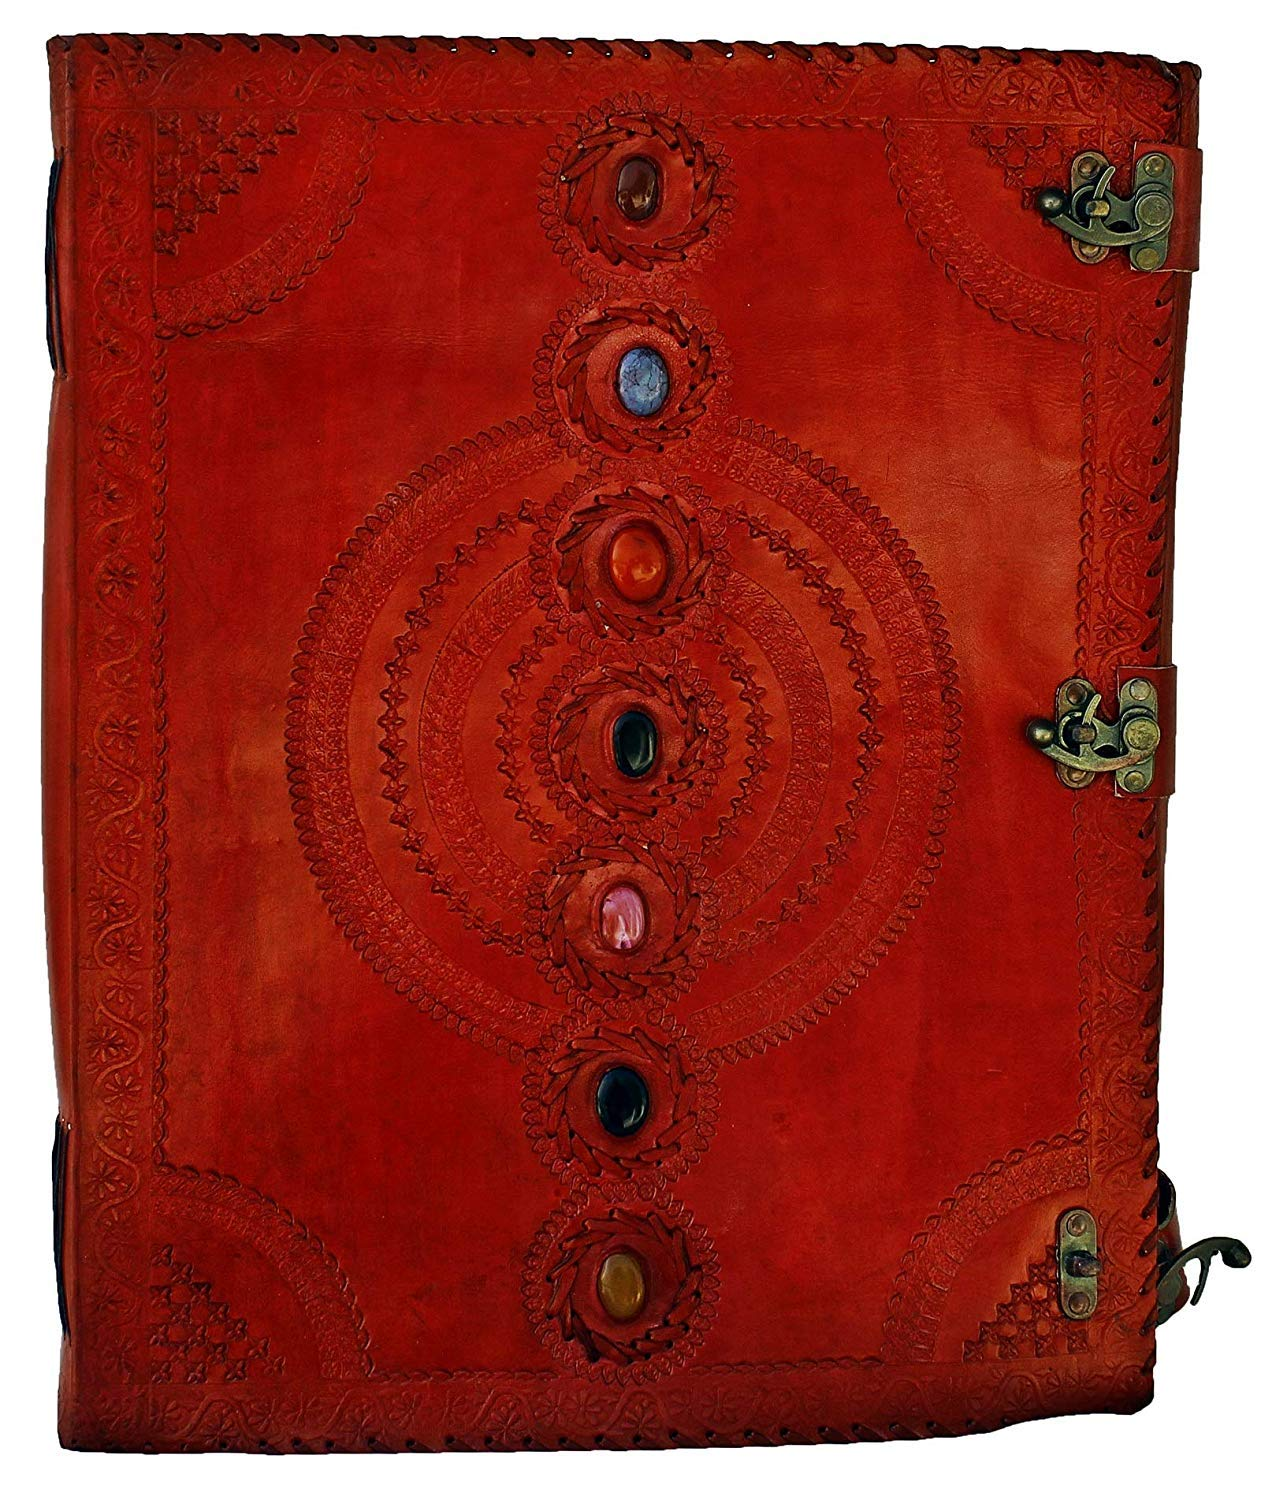 TUZECH Seven Chakra Medieval Stone Embossed Handmade Jumbo Leather Journal Book of Shadows Notebook Office Diary College Poetry Sketch 18 Inches (Red)